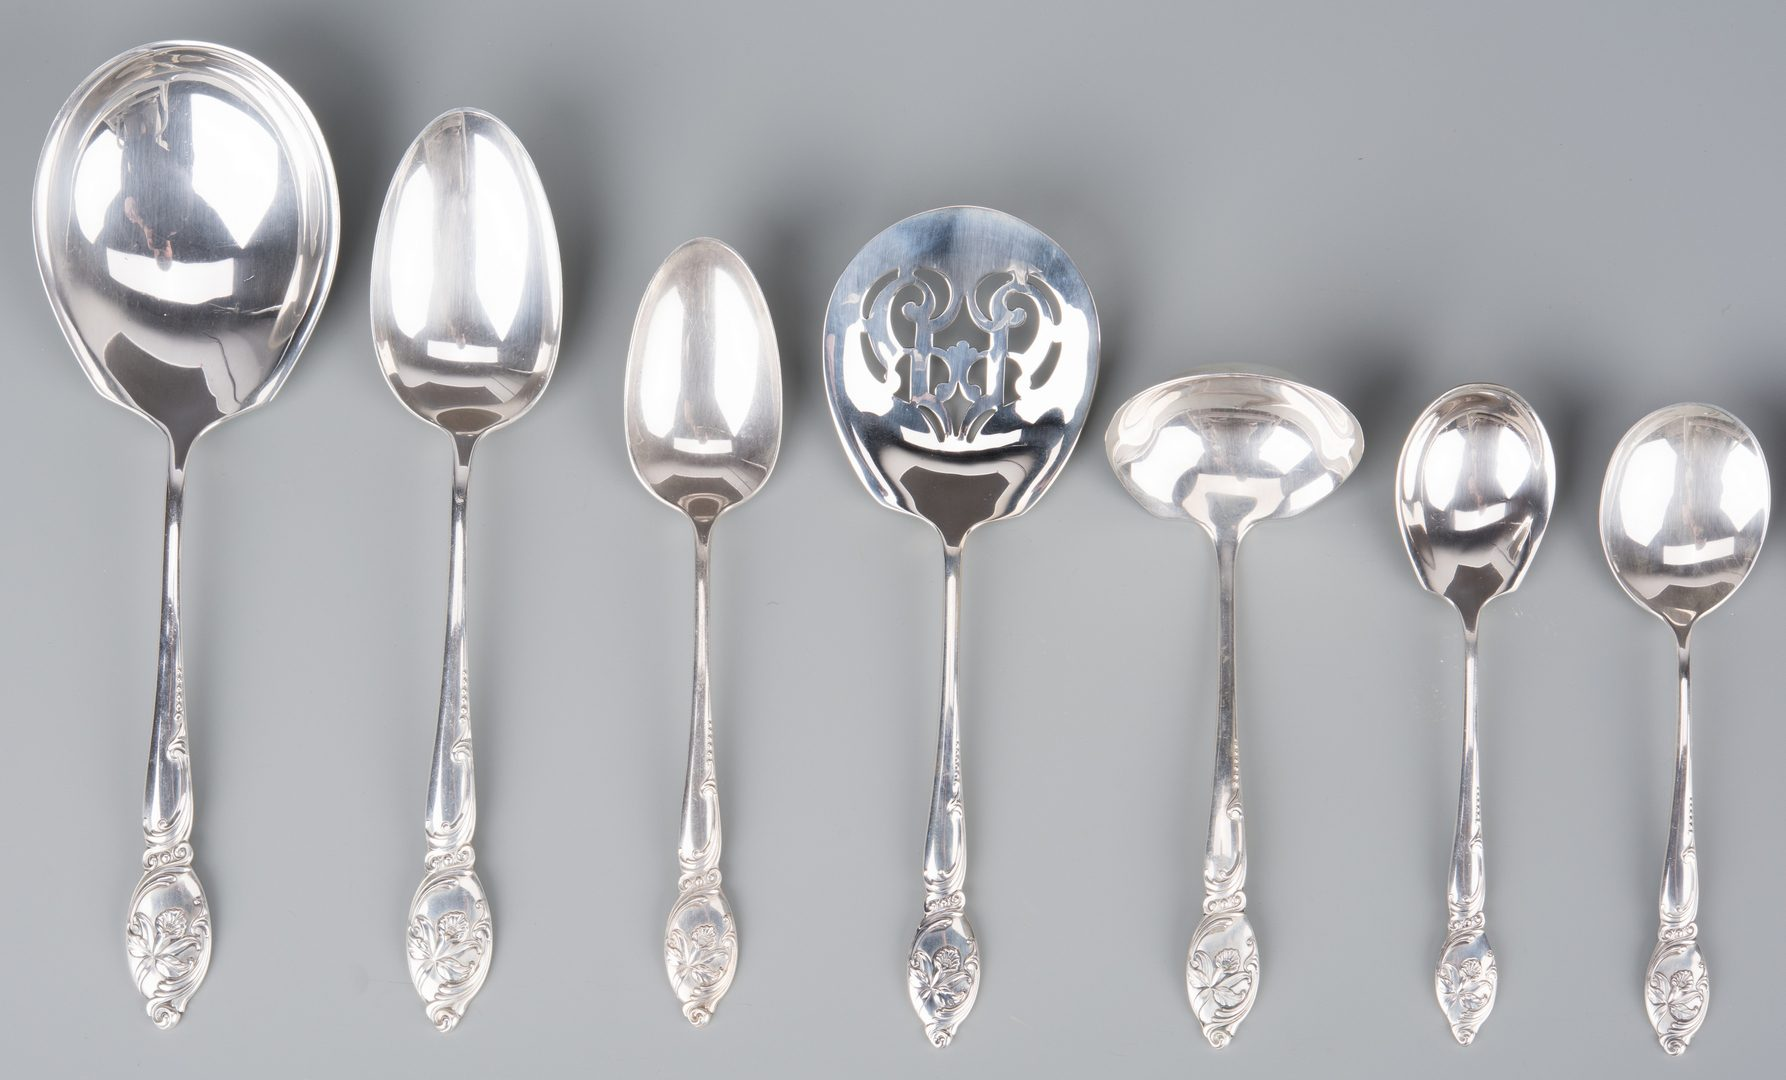 Westmorland Enchanting Orchid Cream Soup Spoon Sterling Silver Flatware